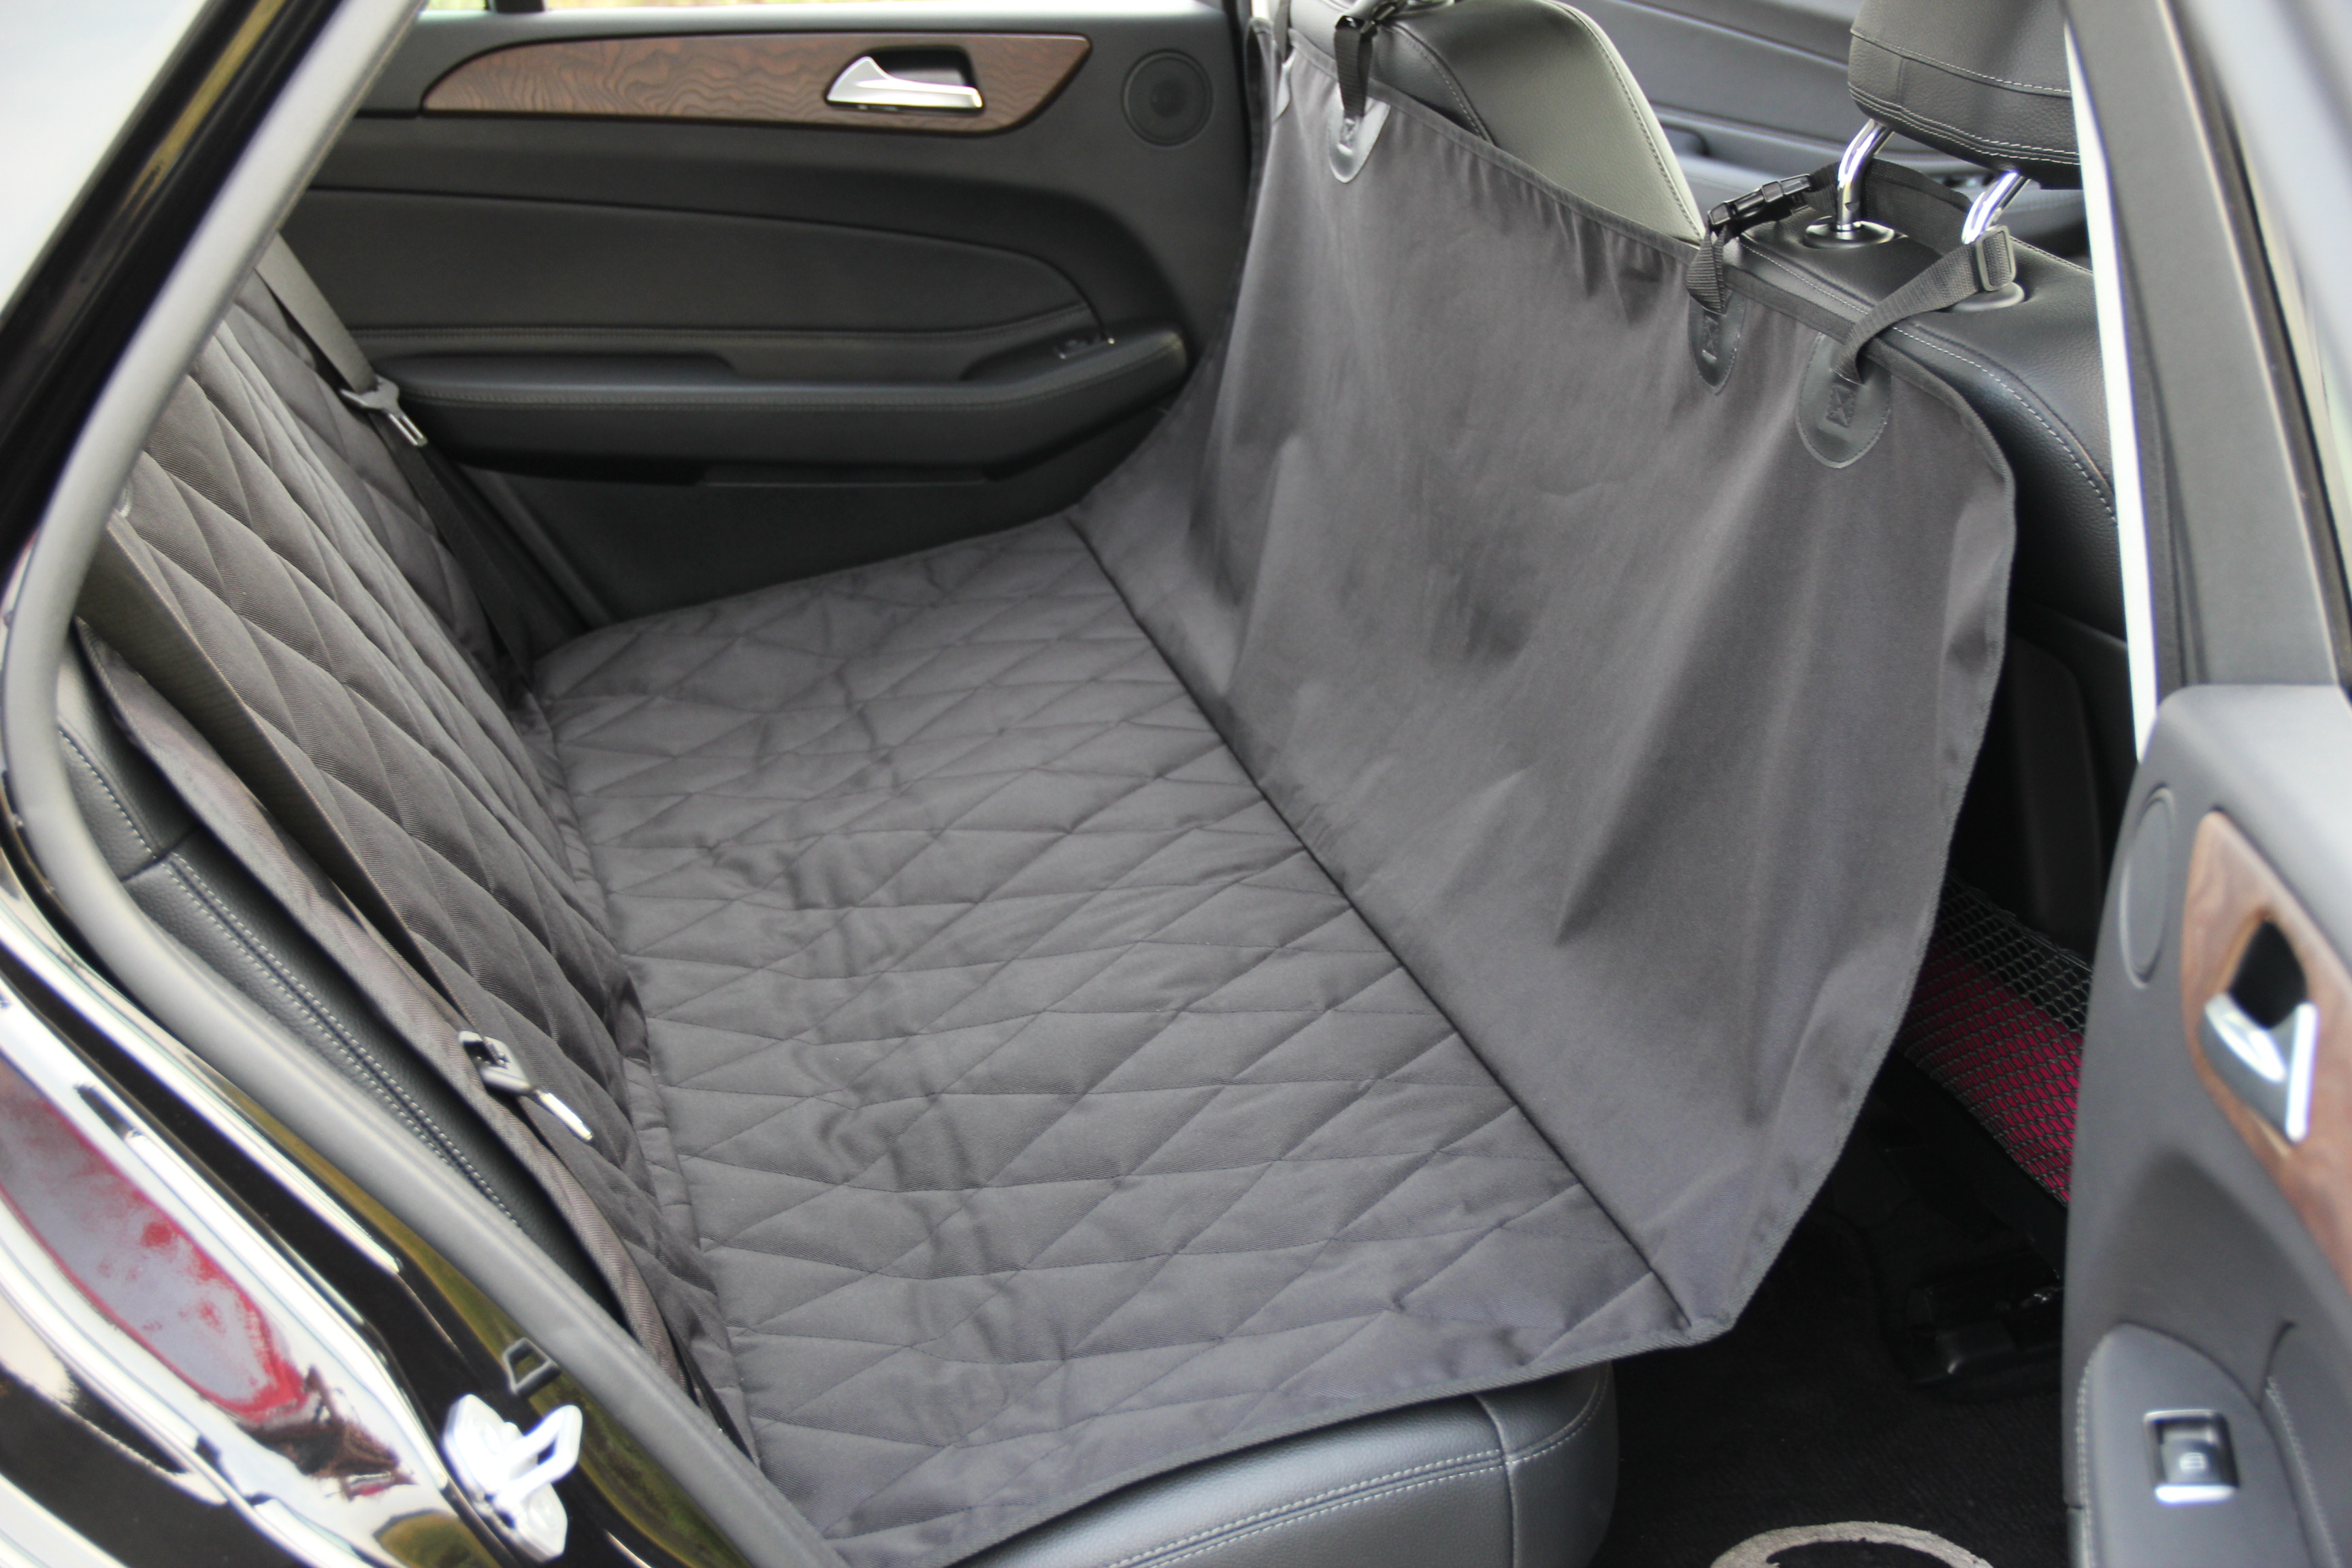 INNX OP902001 Waterproof Quilted Dog Seat Cover with Non Slip Backing  Covertible Hammock Bench Seat Cover for Sedan Cars, Trucks, SUVs or Minivans Size 58